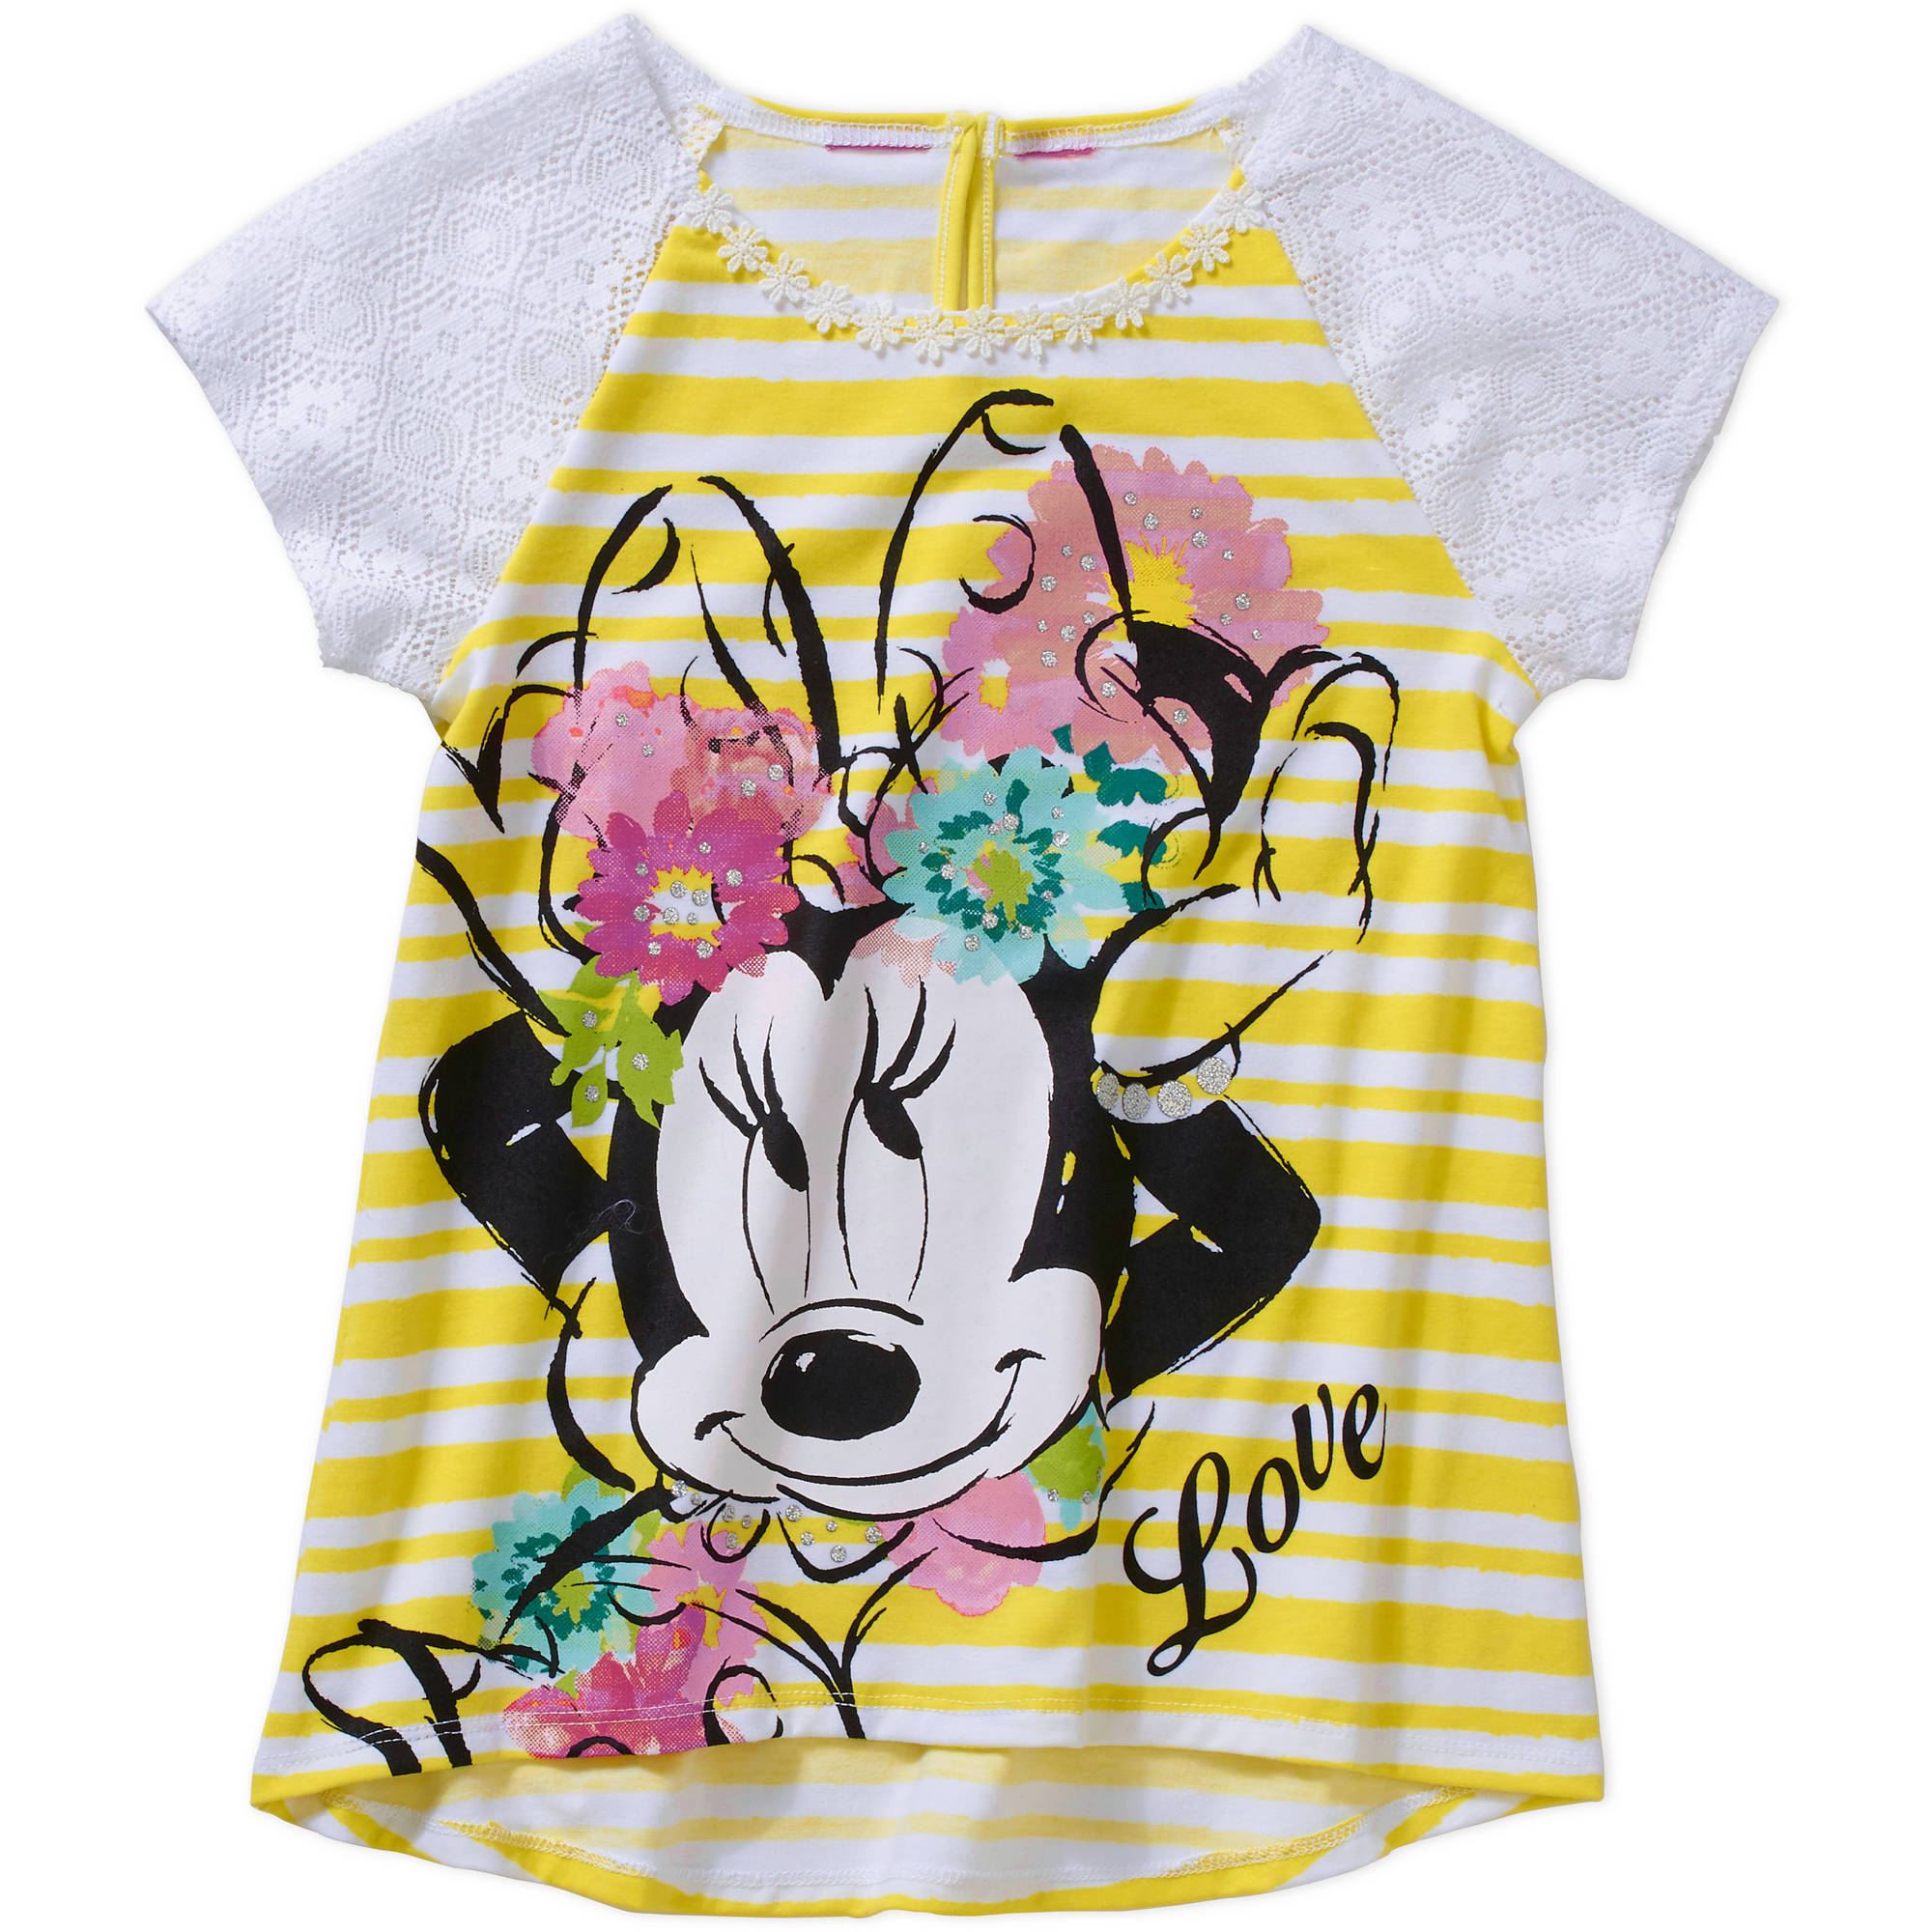 Disney Minnie Mouse Girls' Crochet Lace Sleeve Graphic Top